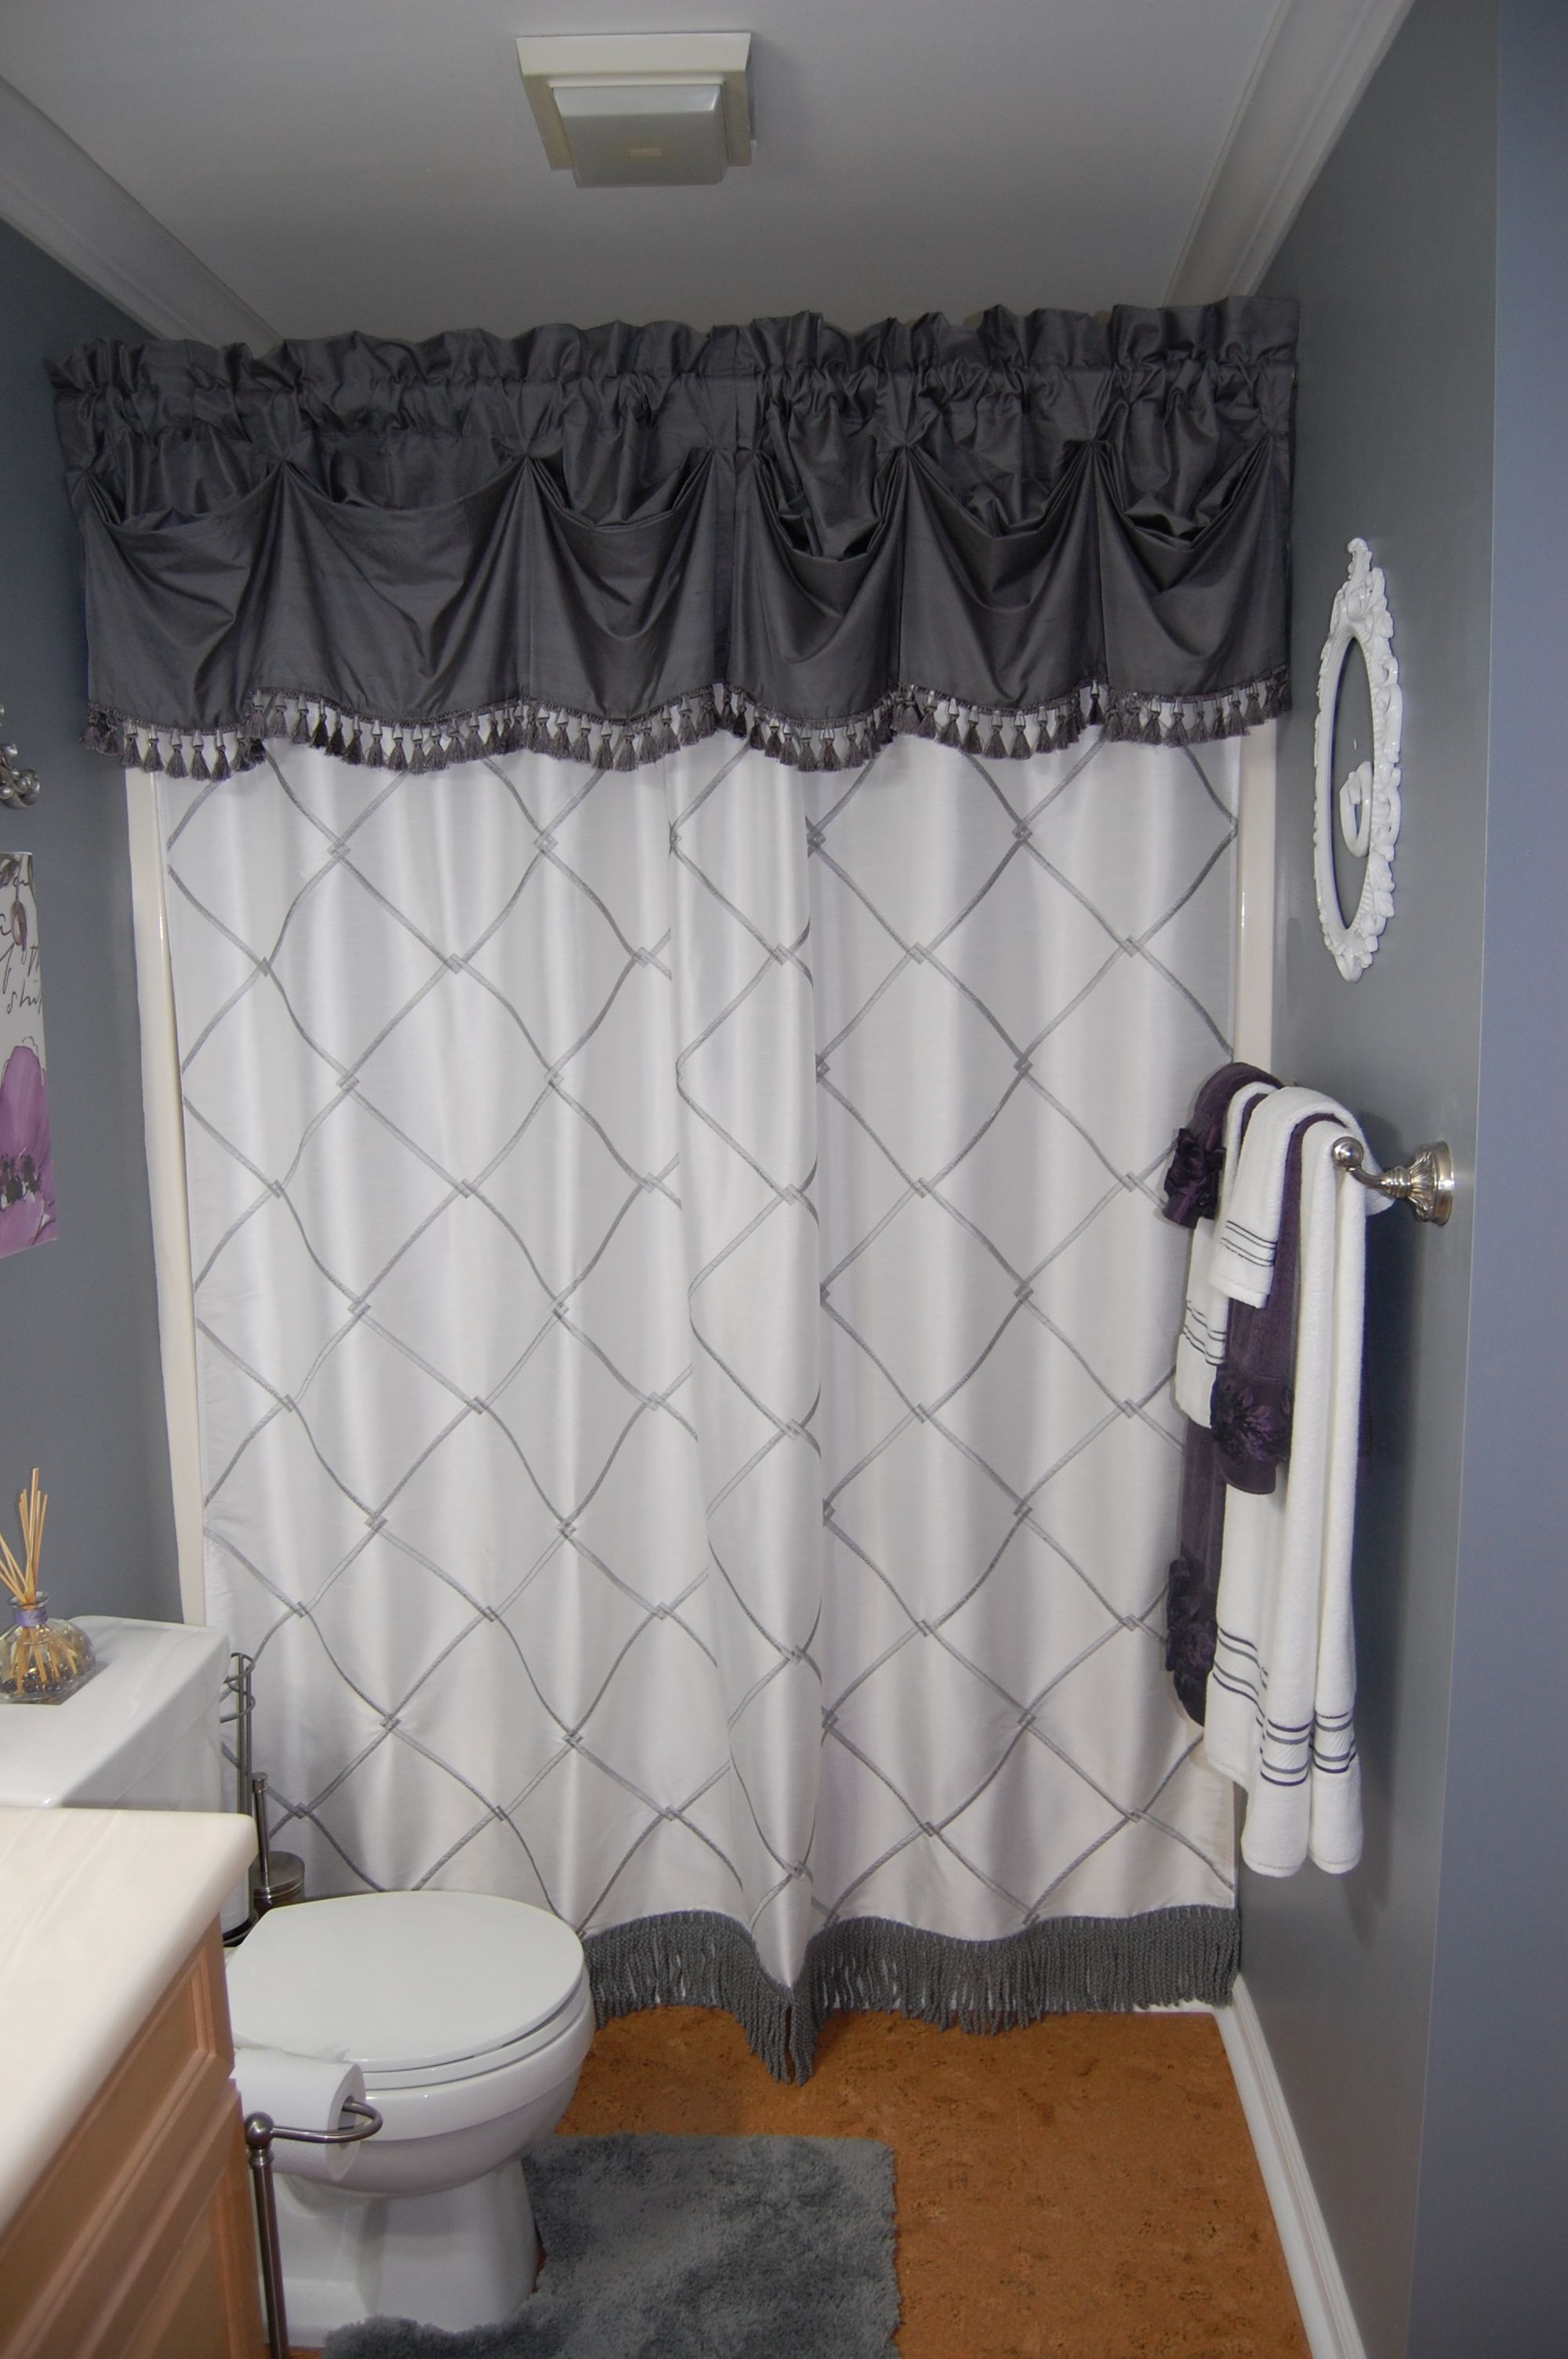 L M Cline S Llc New Shower Curtain And Valance Towels